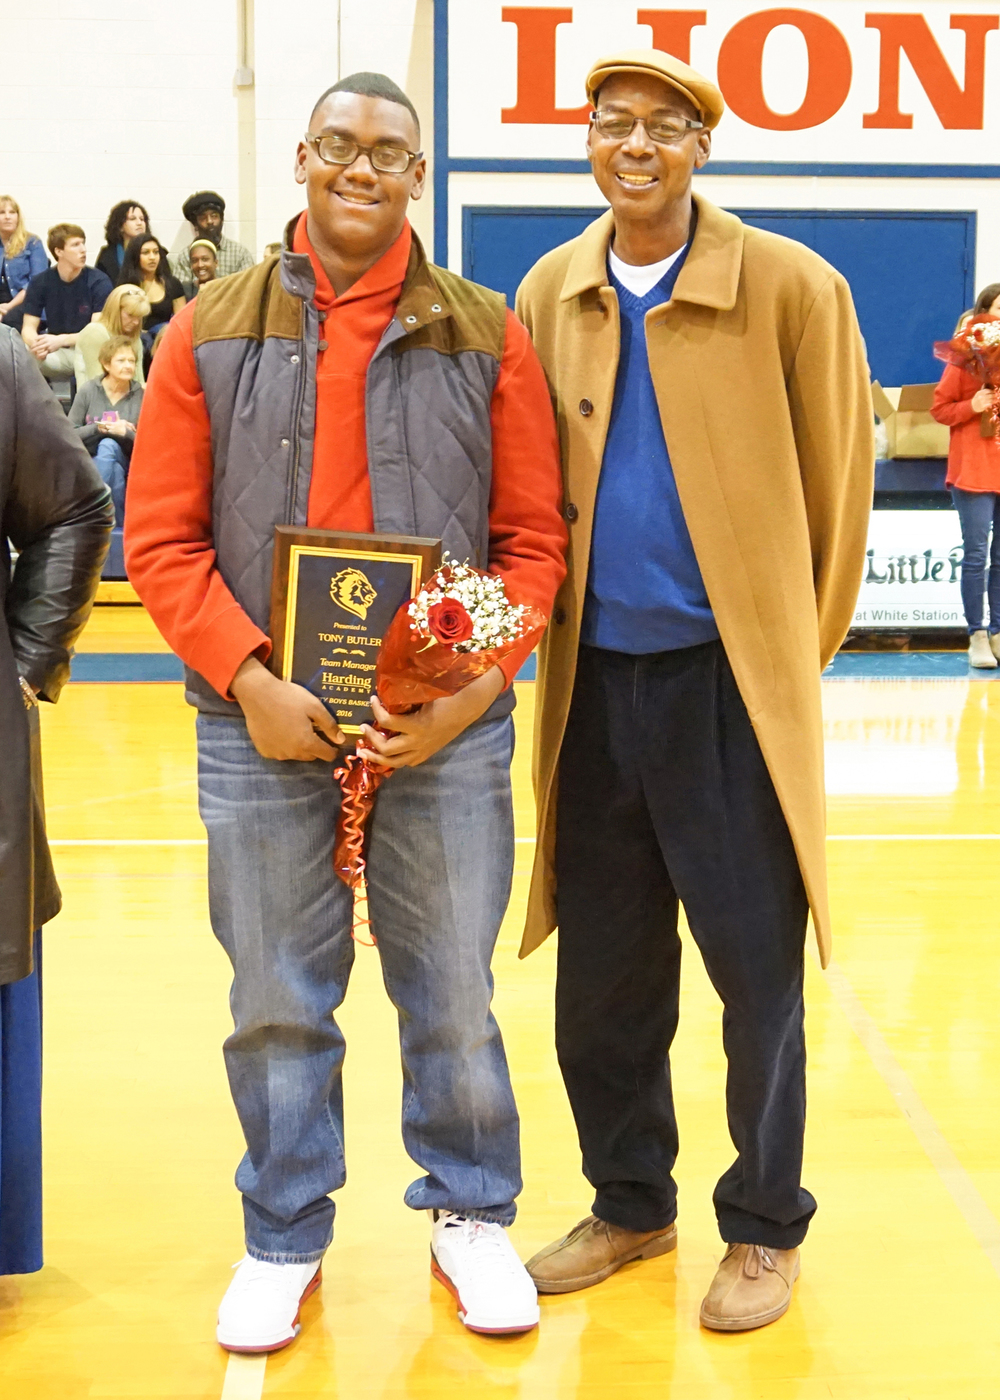 Feb12 SeniorNightBasketball07.jpg